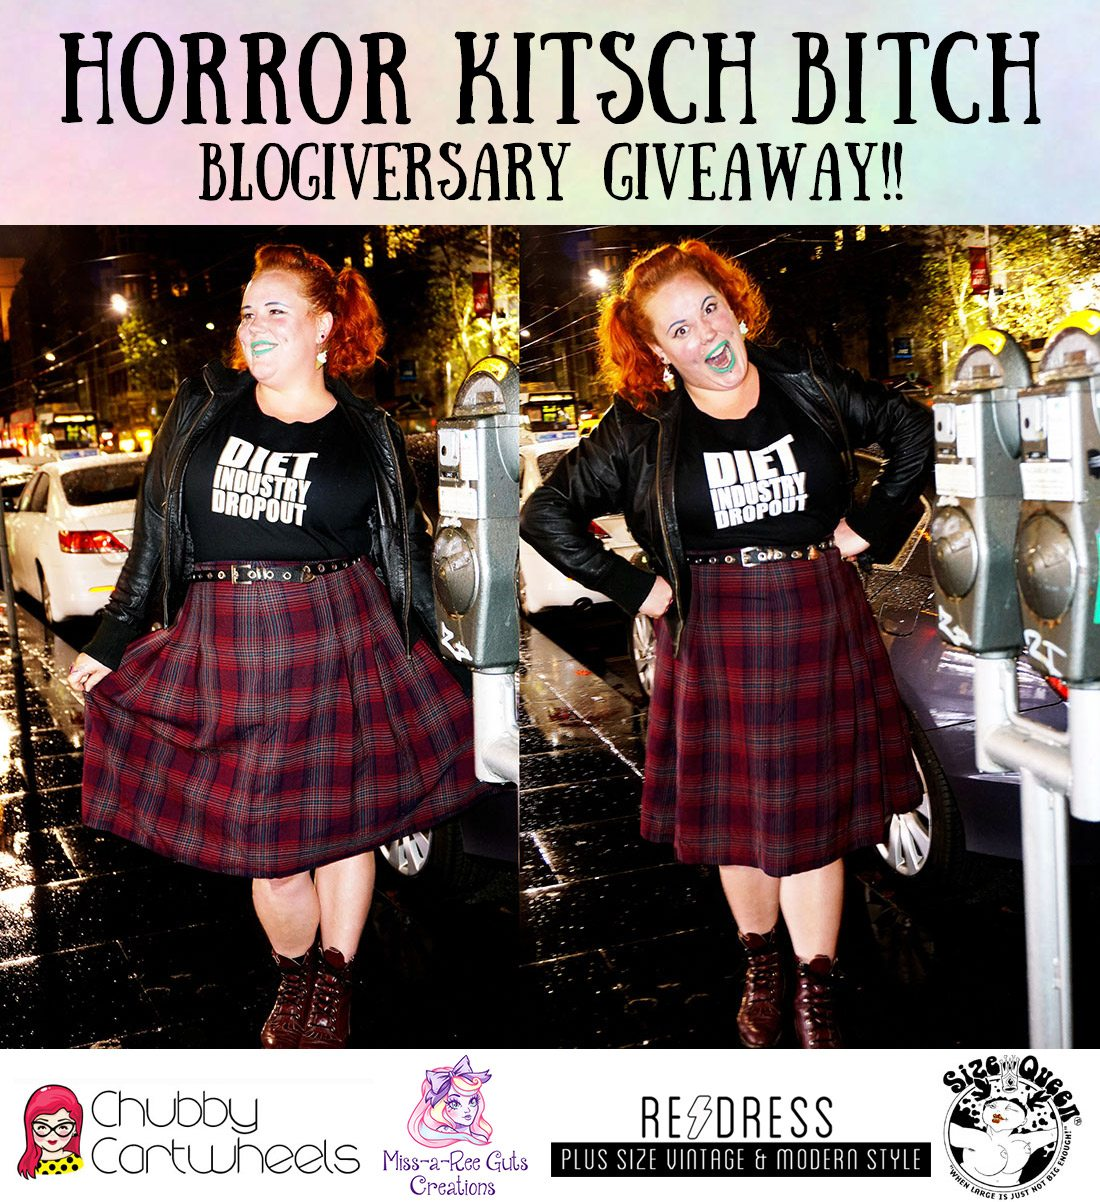 Horror Kitsch Bitch Blogiversary Giveaway Competition